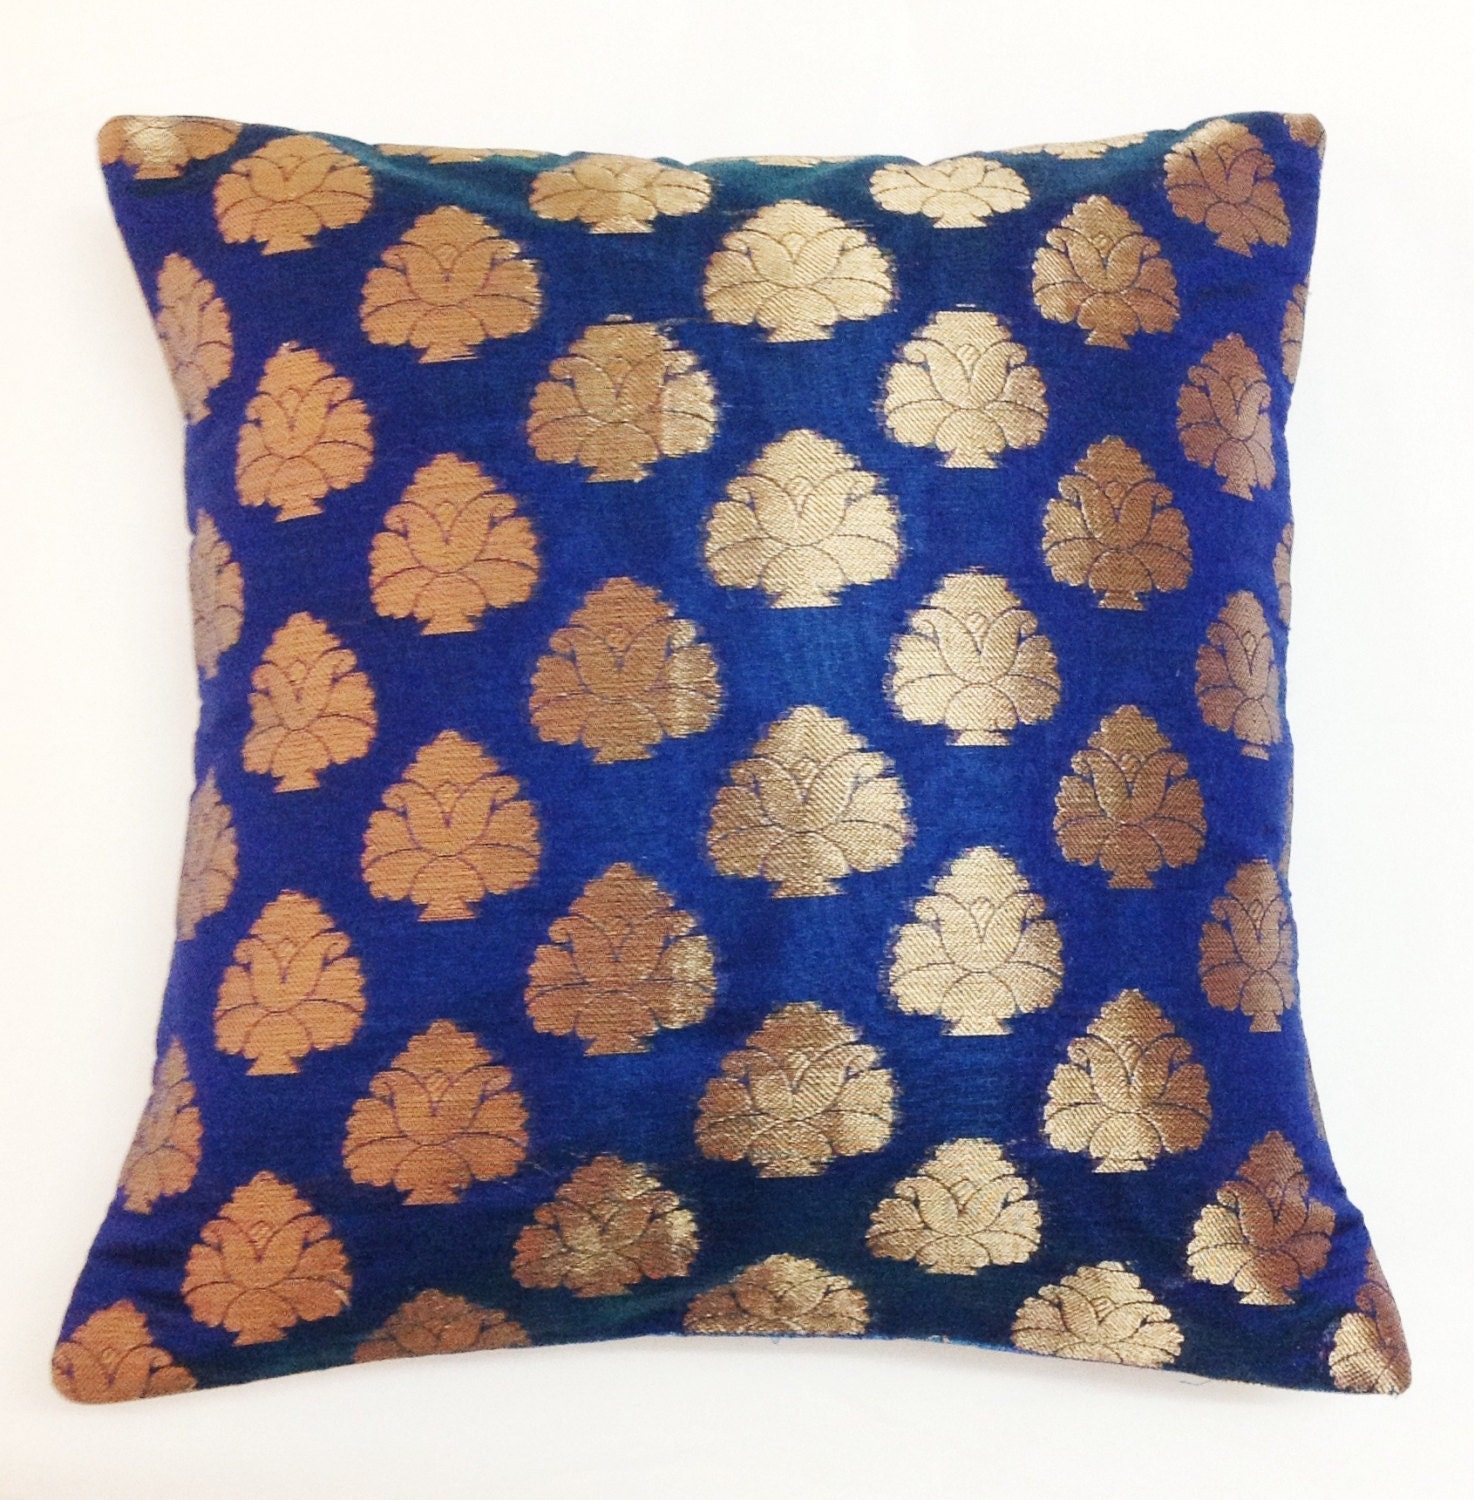 Electric Blue and Gold Decorative Silk Pillow Cover - Handmade Throw Pillow - Silk Cushion Cover  12x12 inches - DesiPillows